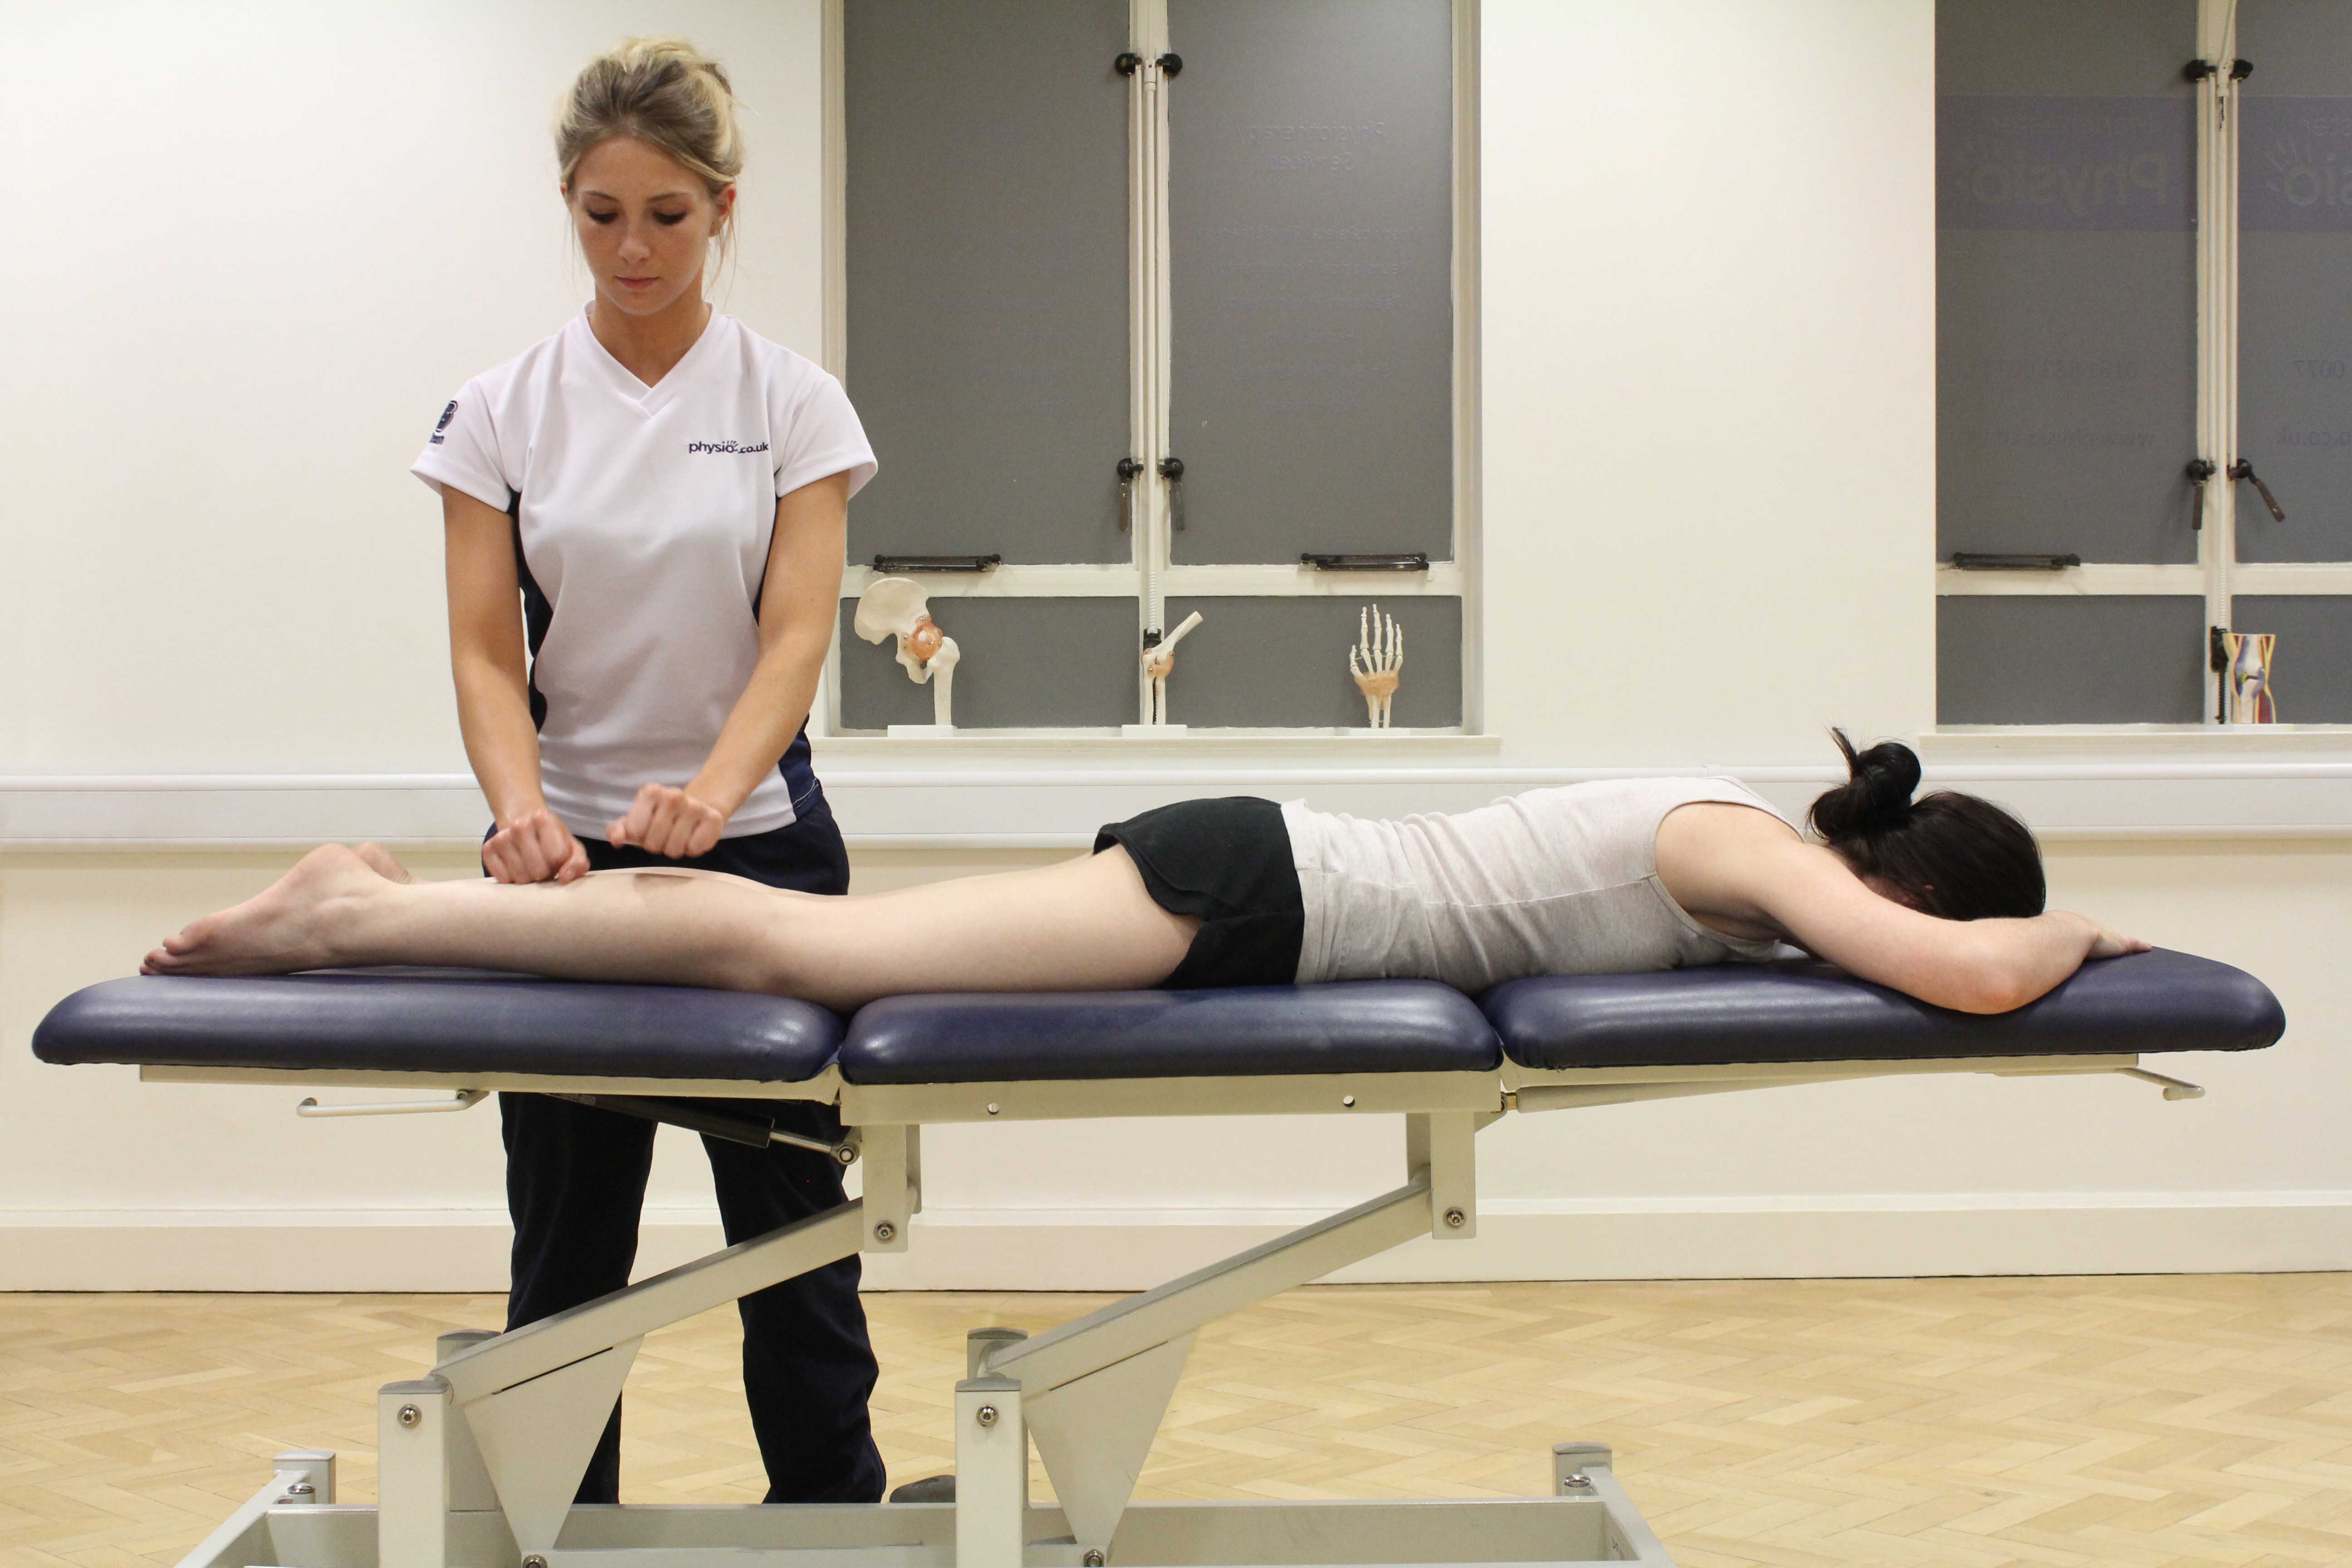 Beating percussion massage applied to the gastrocnemius muscle by experienced therapist